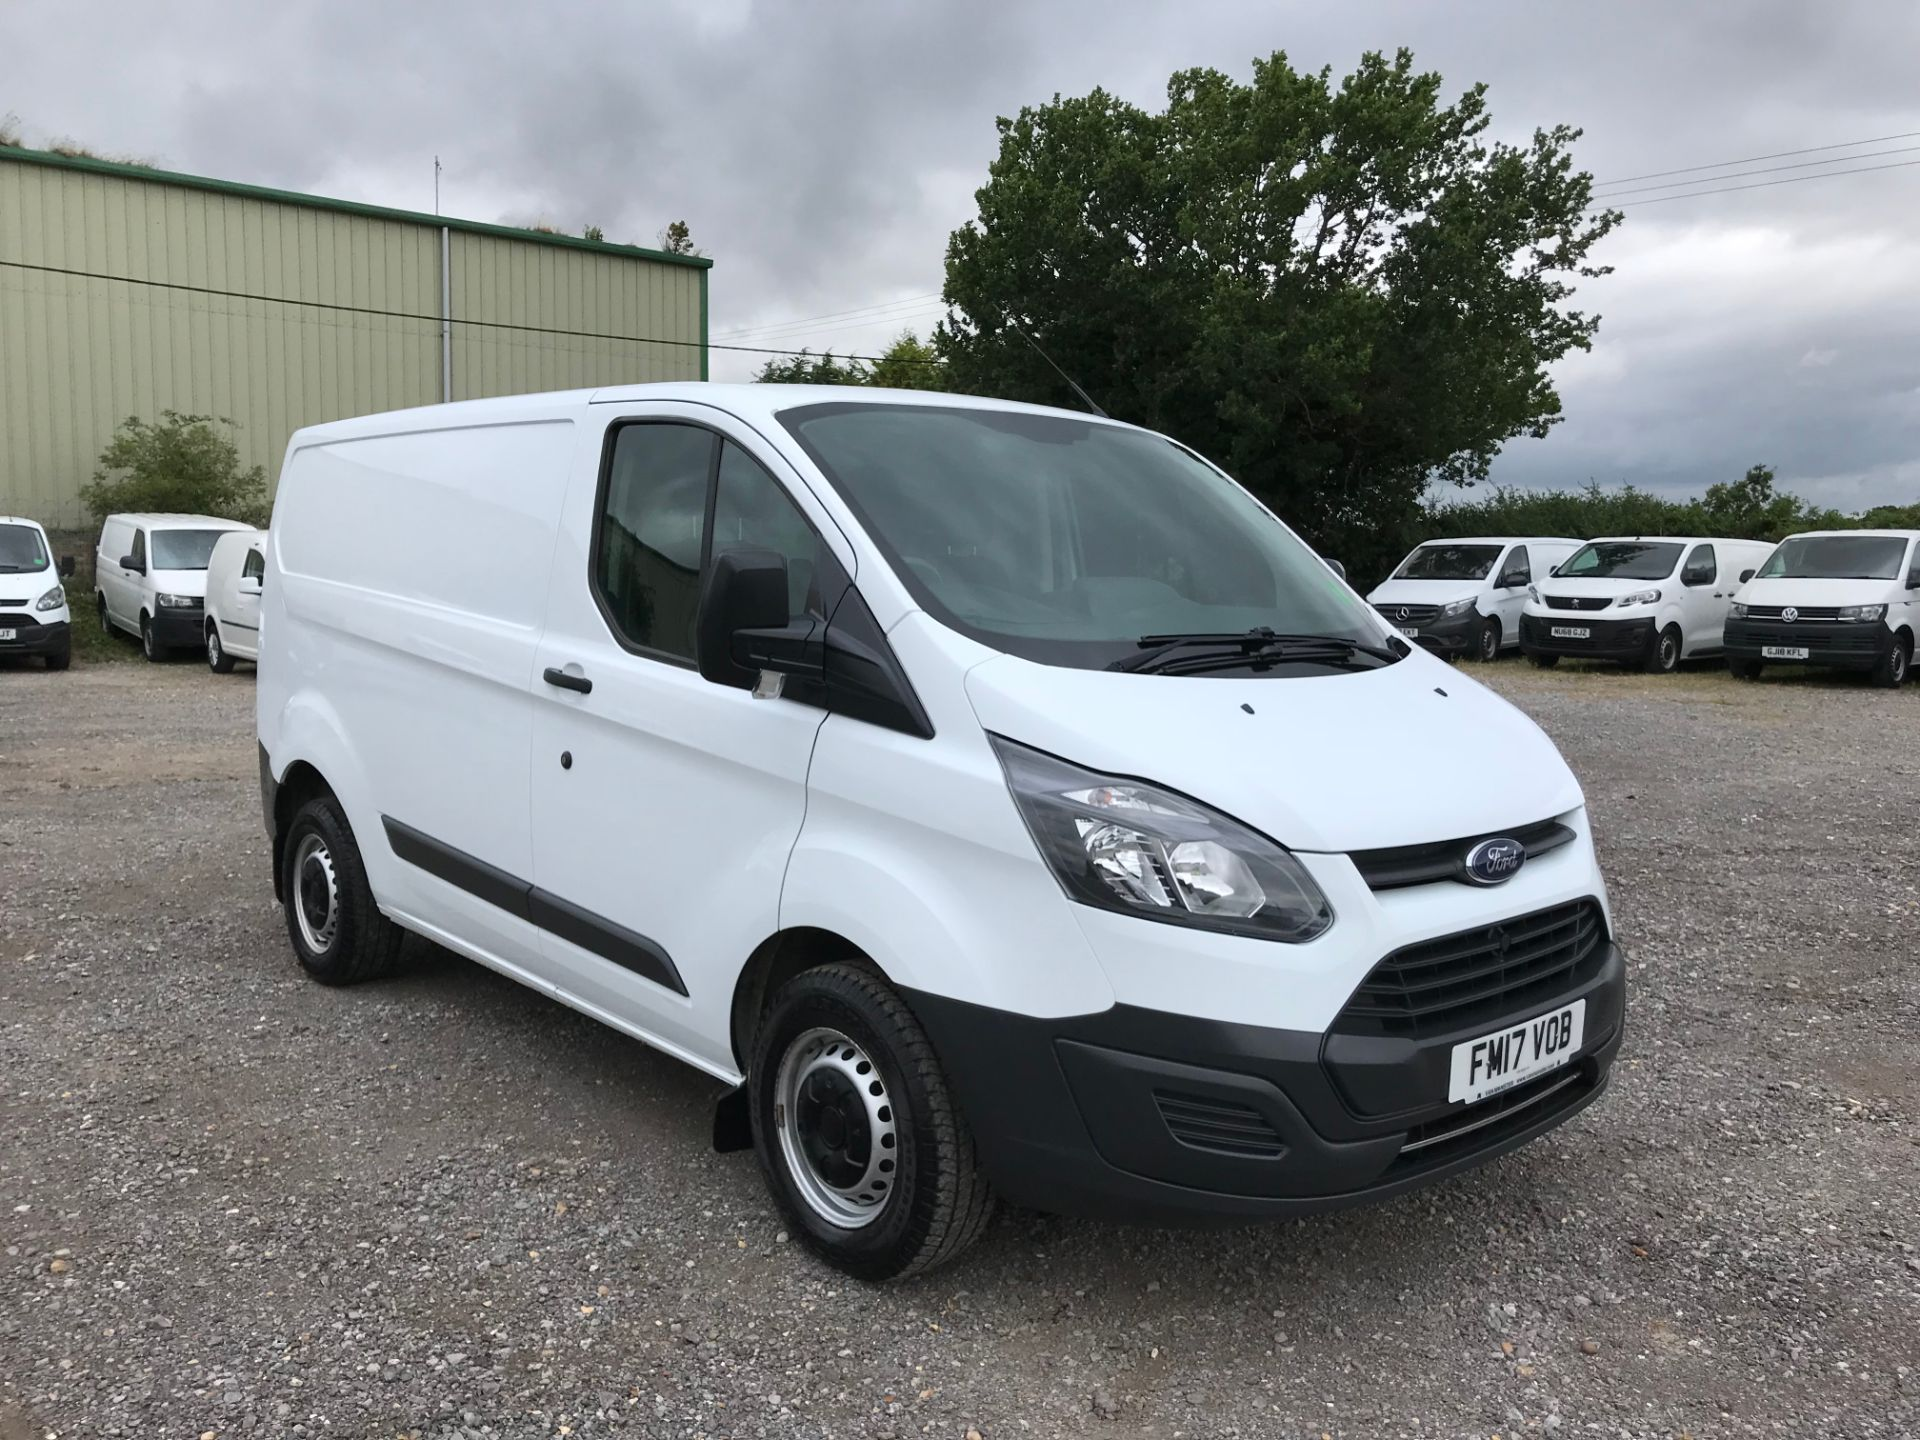 2017 Ford Transit Custom  290 L1 DIESEL FWD 2.0 TDCI 105PS LOW ROOF VAN EURO 6 (FM17VOB)